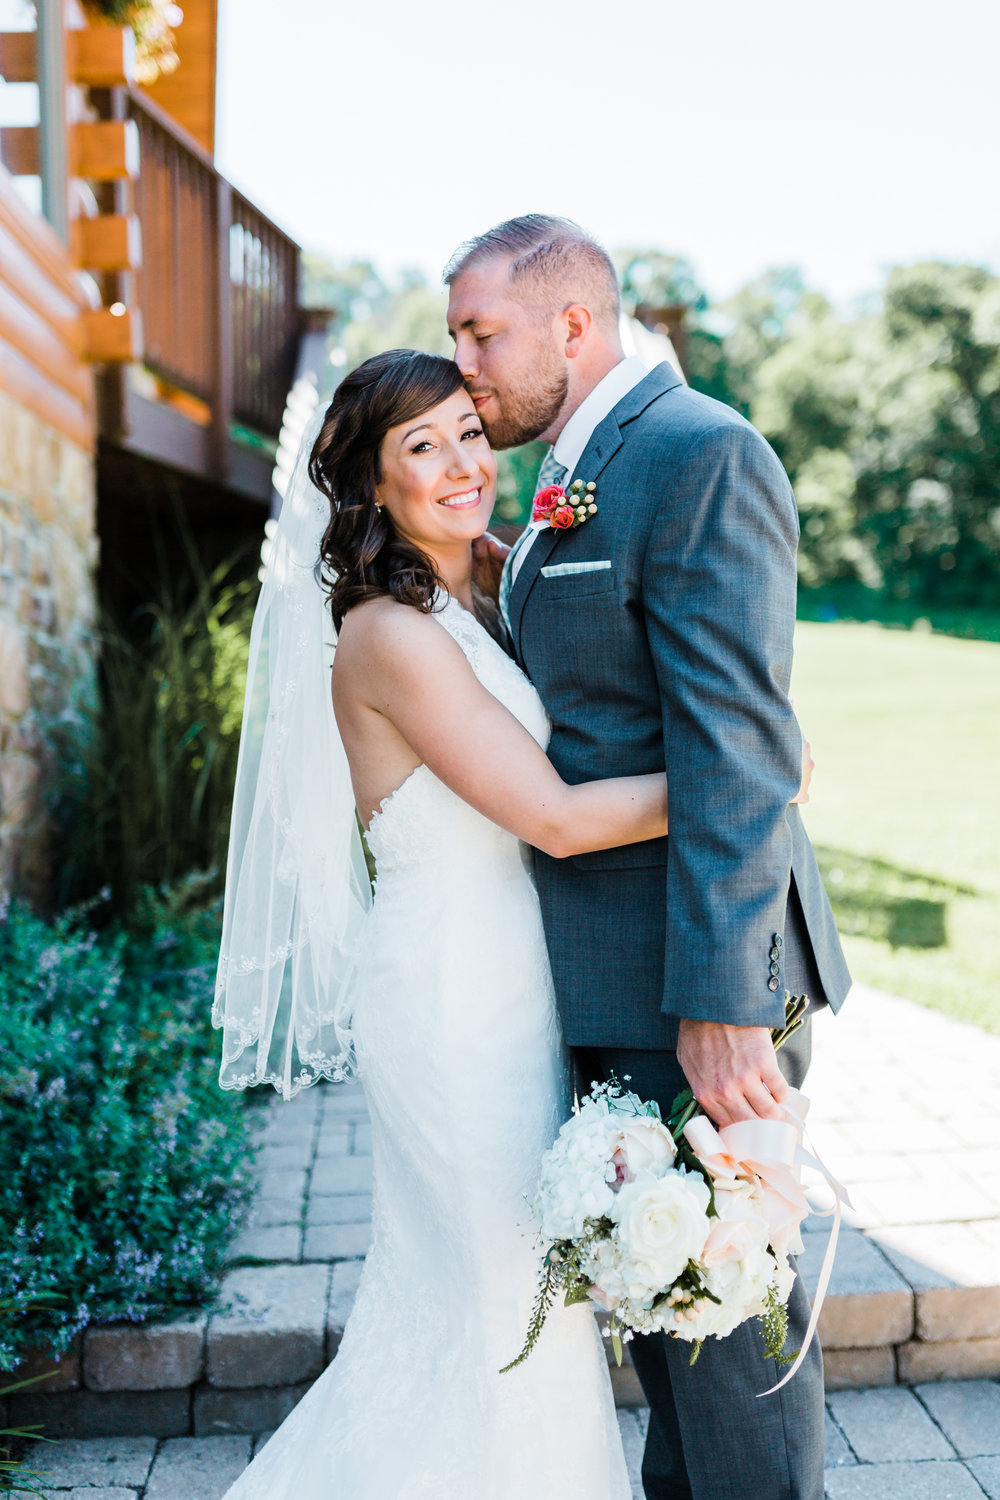 groom kissing his bride's temple gently - maryland wedding photo and video - PA wedding venues - mountain wedding inspo